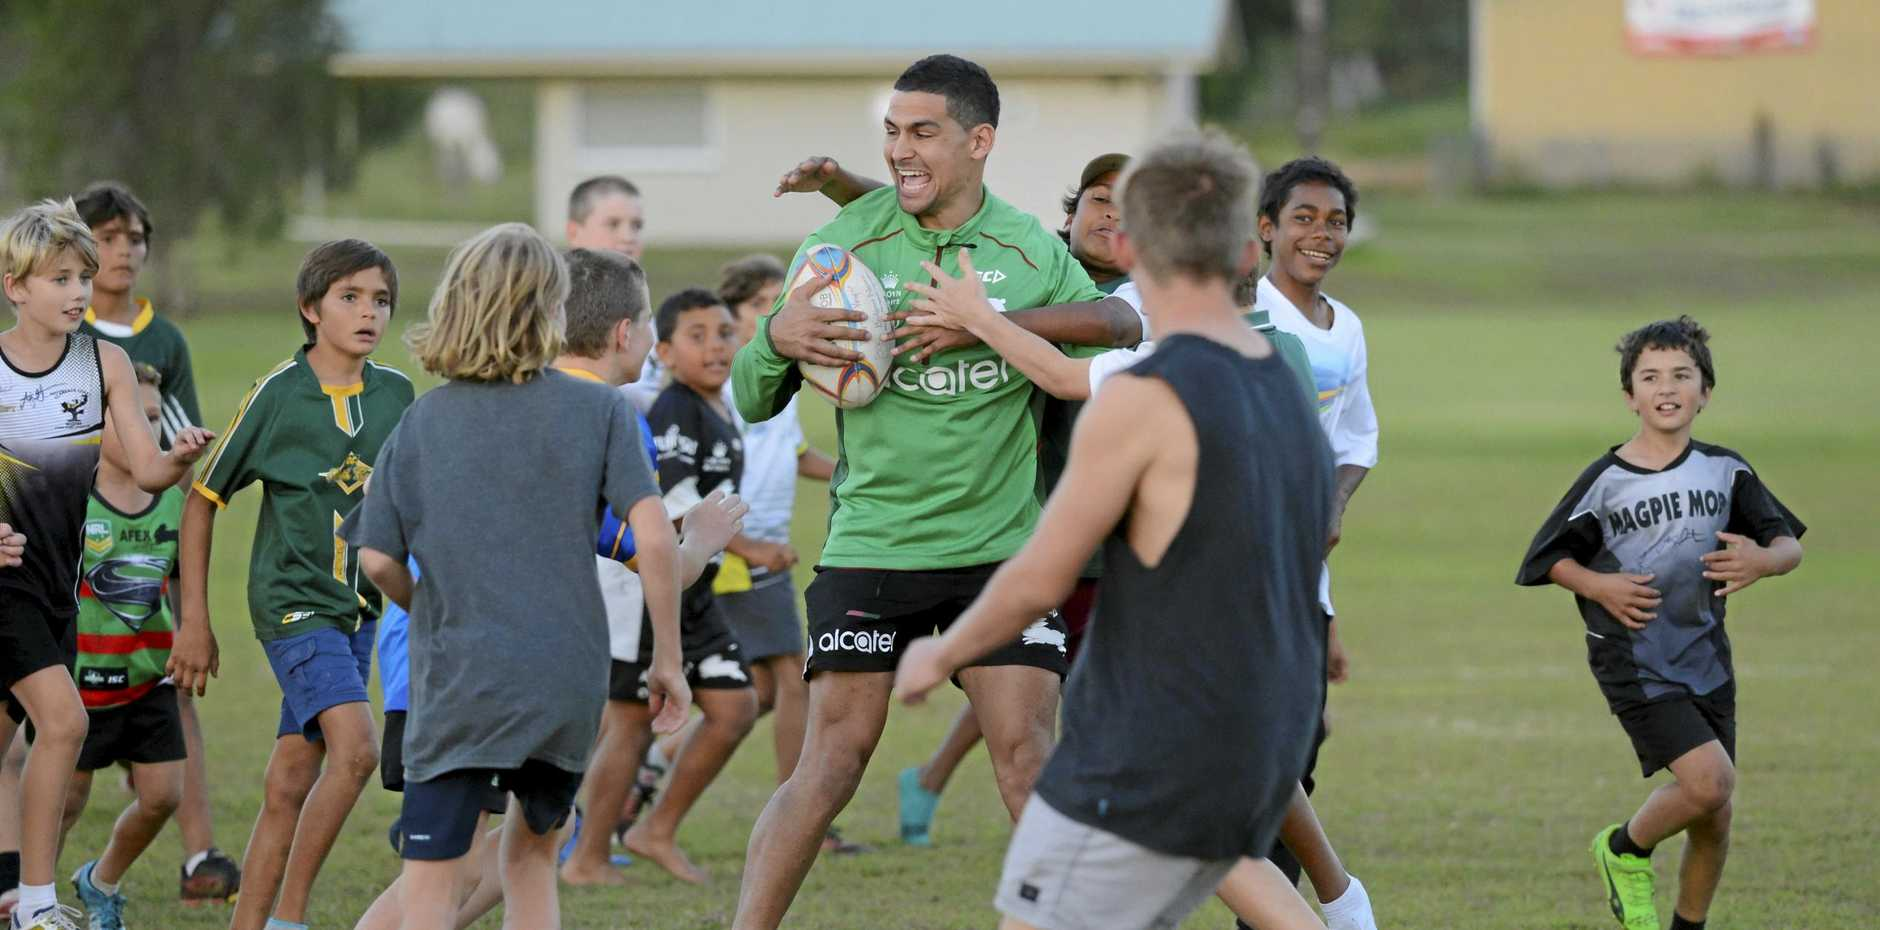 South Sydney Rabbitohs five eighth Cody Walker had a flying visit to the Clarence Valley in May where he was King of the Kids during a meet and greet at Wherret Park.